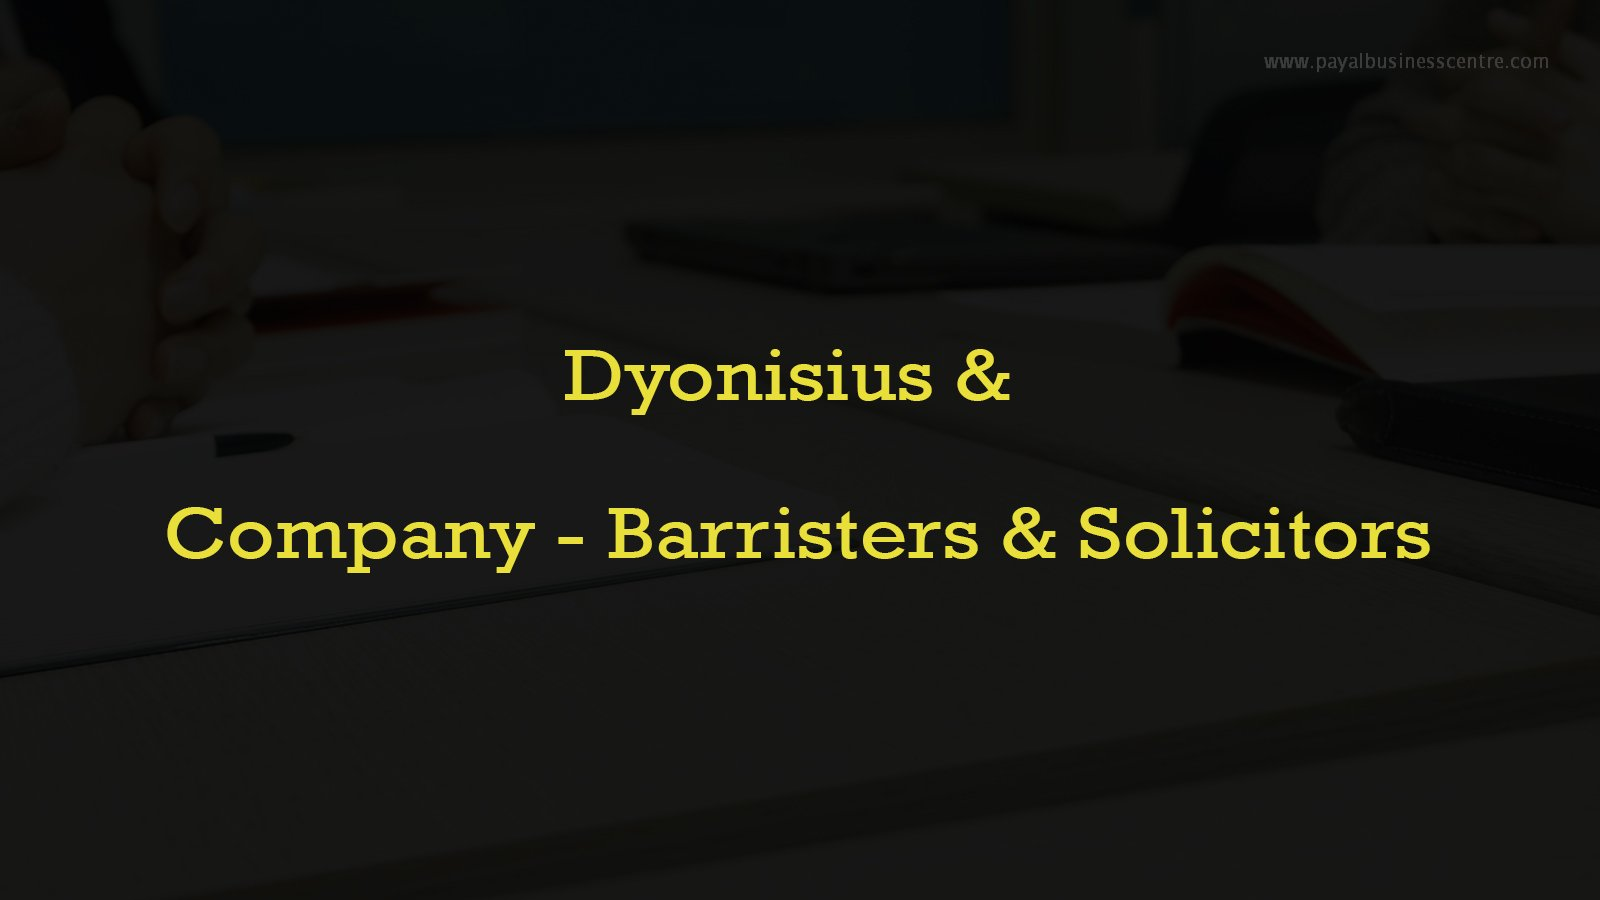 Dyonisius & Company – Barristers & Solicitors